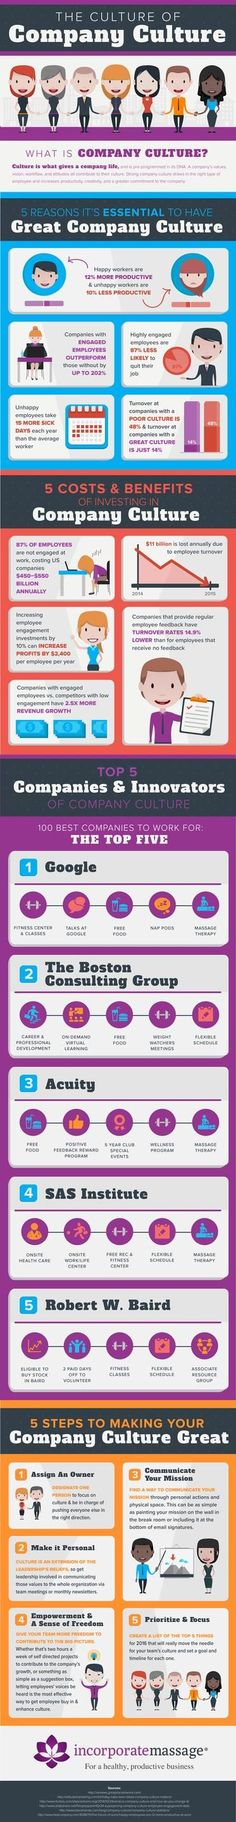 5 steps to creating a company culture that employees love - The Business Journals